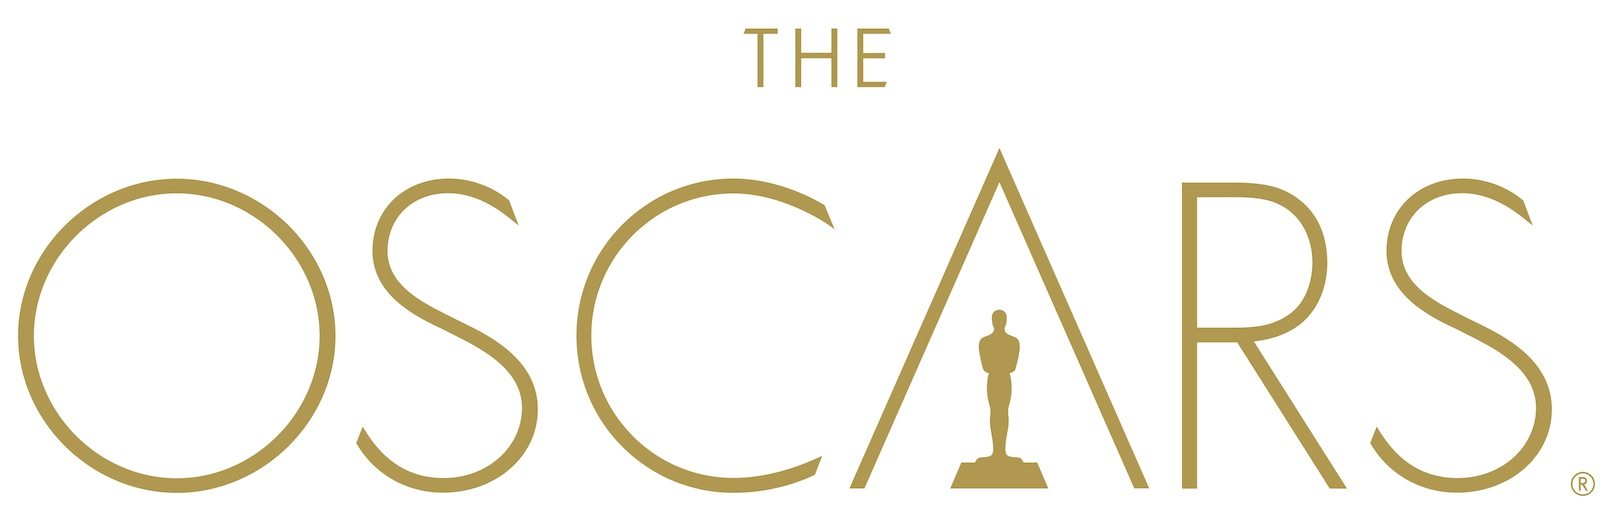 The Academy Awards for outstanding film achievements of 2013 will be presented on `Oscar Sunday,` March 2, at the Dolby Theatre at Hollywood & Highland Center, and televised live on the ABC Television Network. (Photo credit: ©A.M.P.A.S.®)